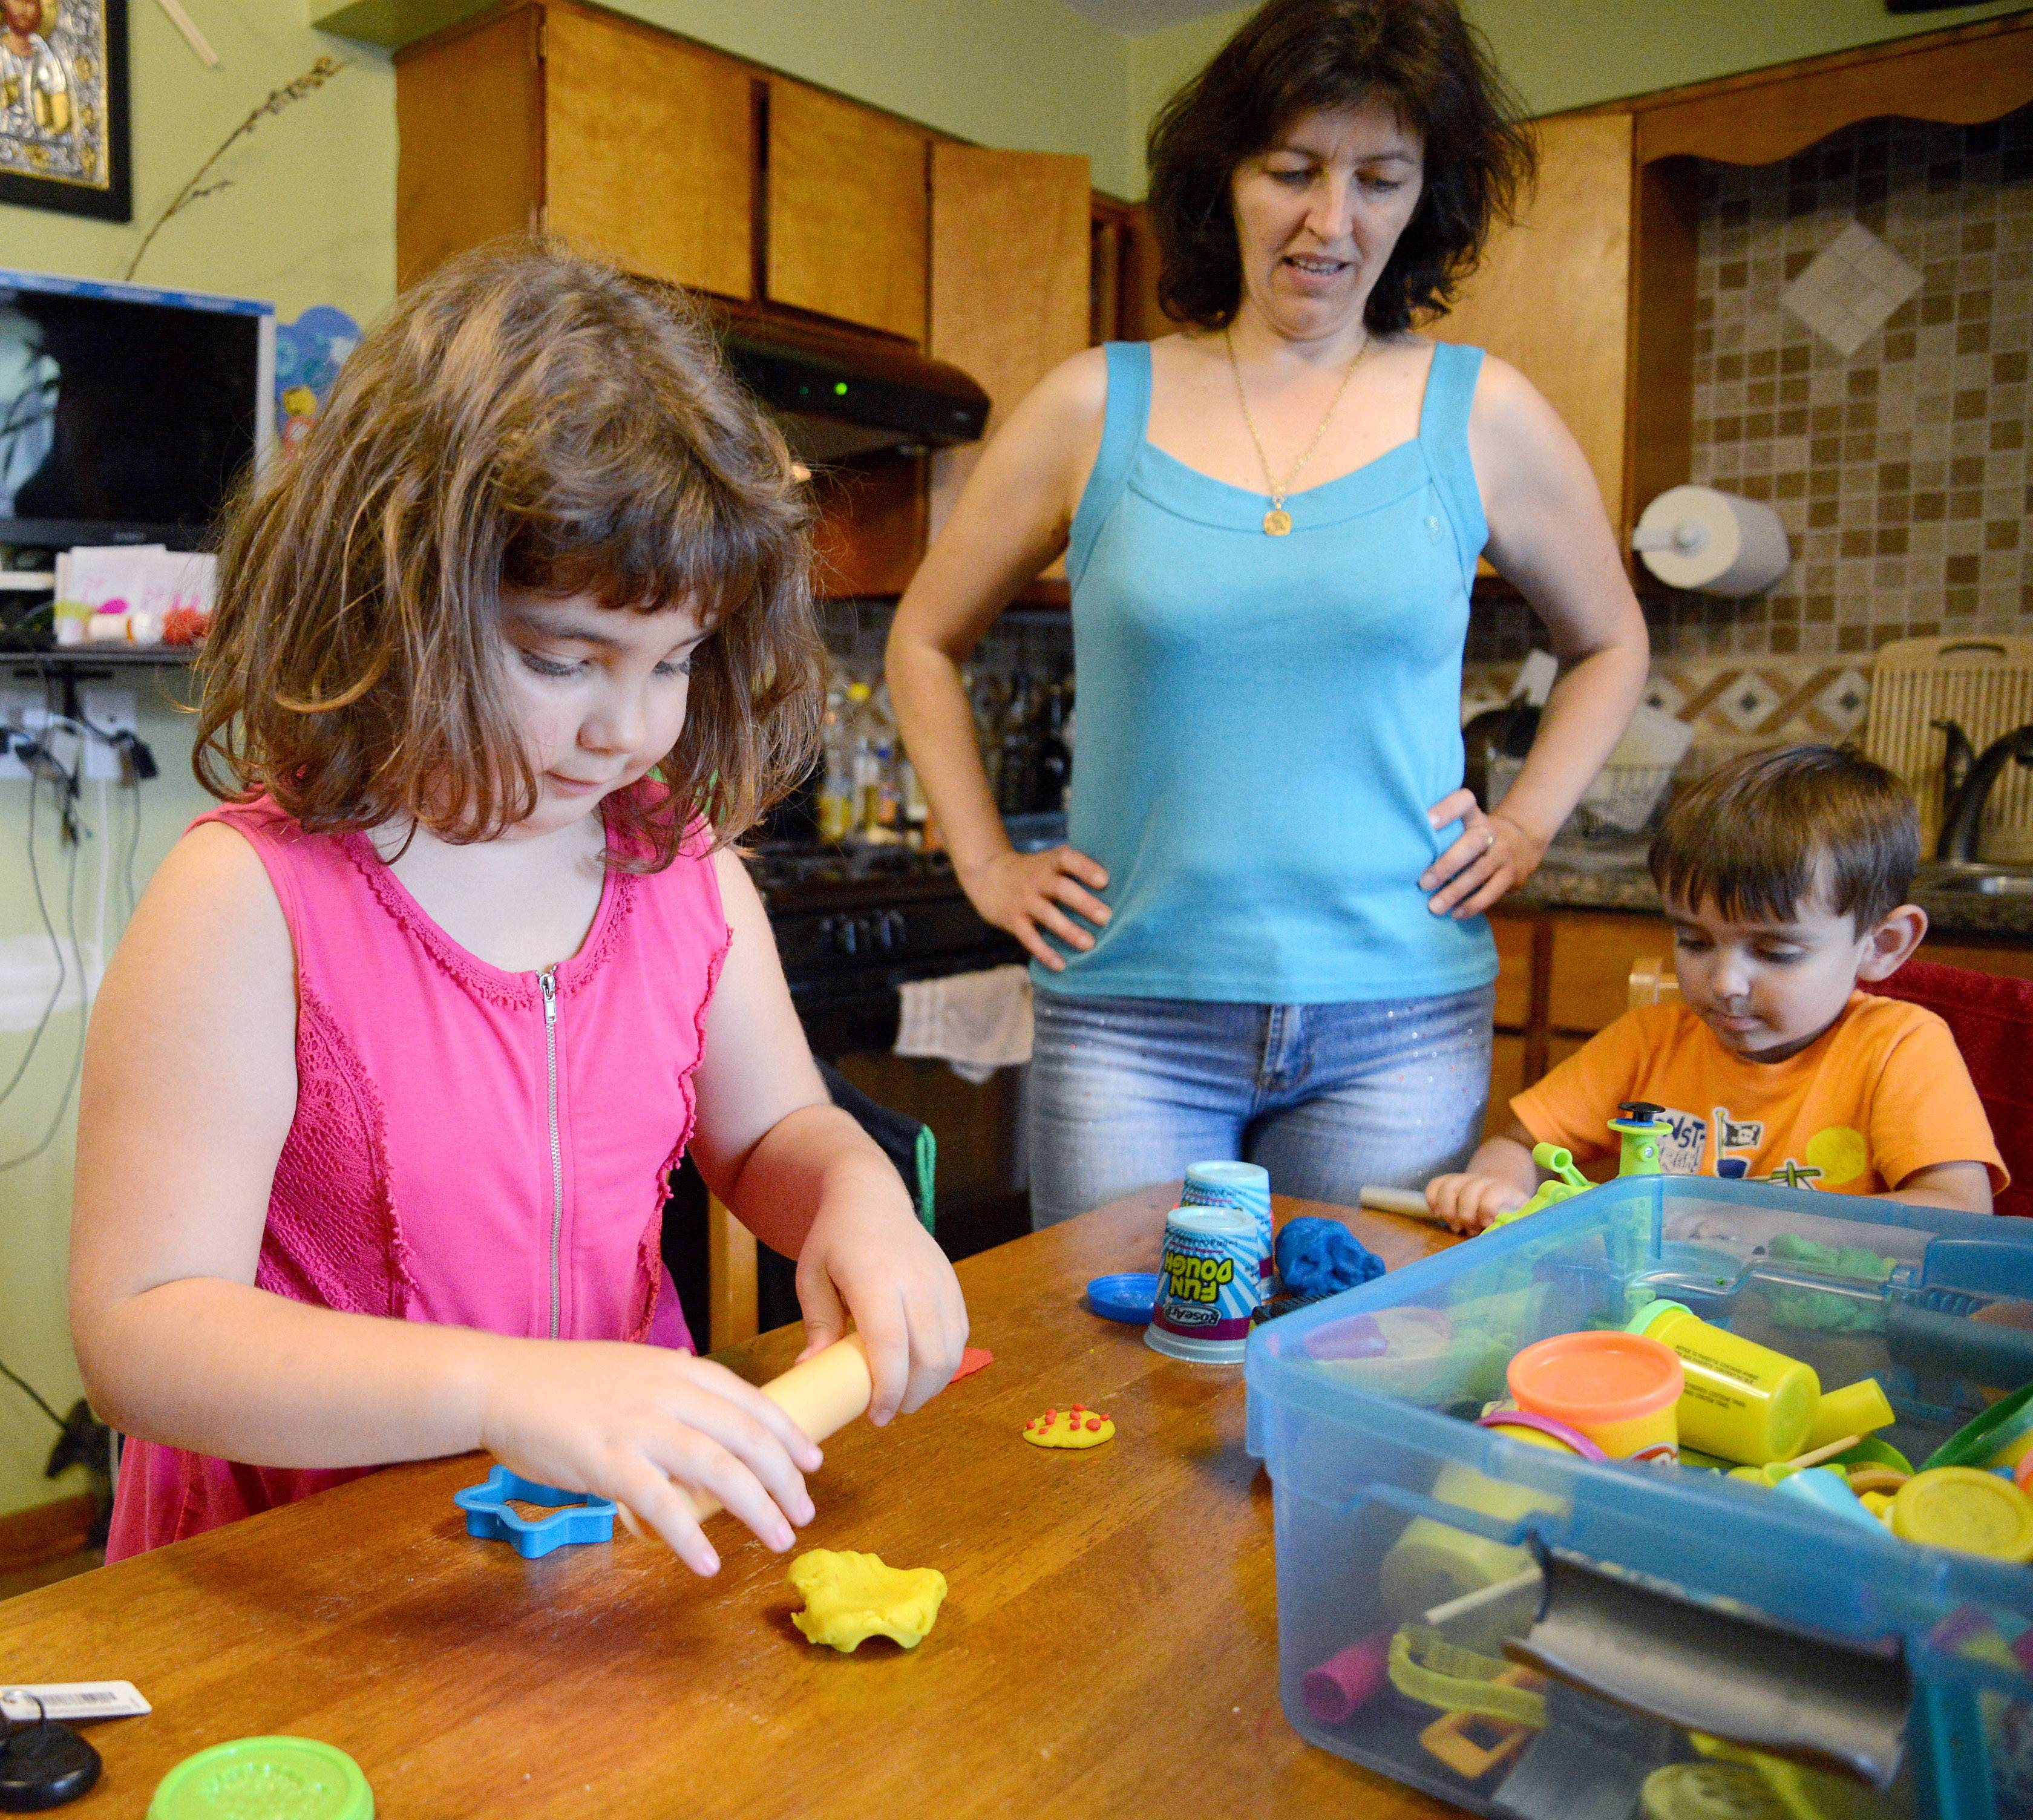 Elena Serban watches her children, Maria and Victor, play with Play-Doh at the kitchen table in their South Elgin home. Maria has juvenile idiopathic arthritis.